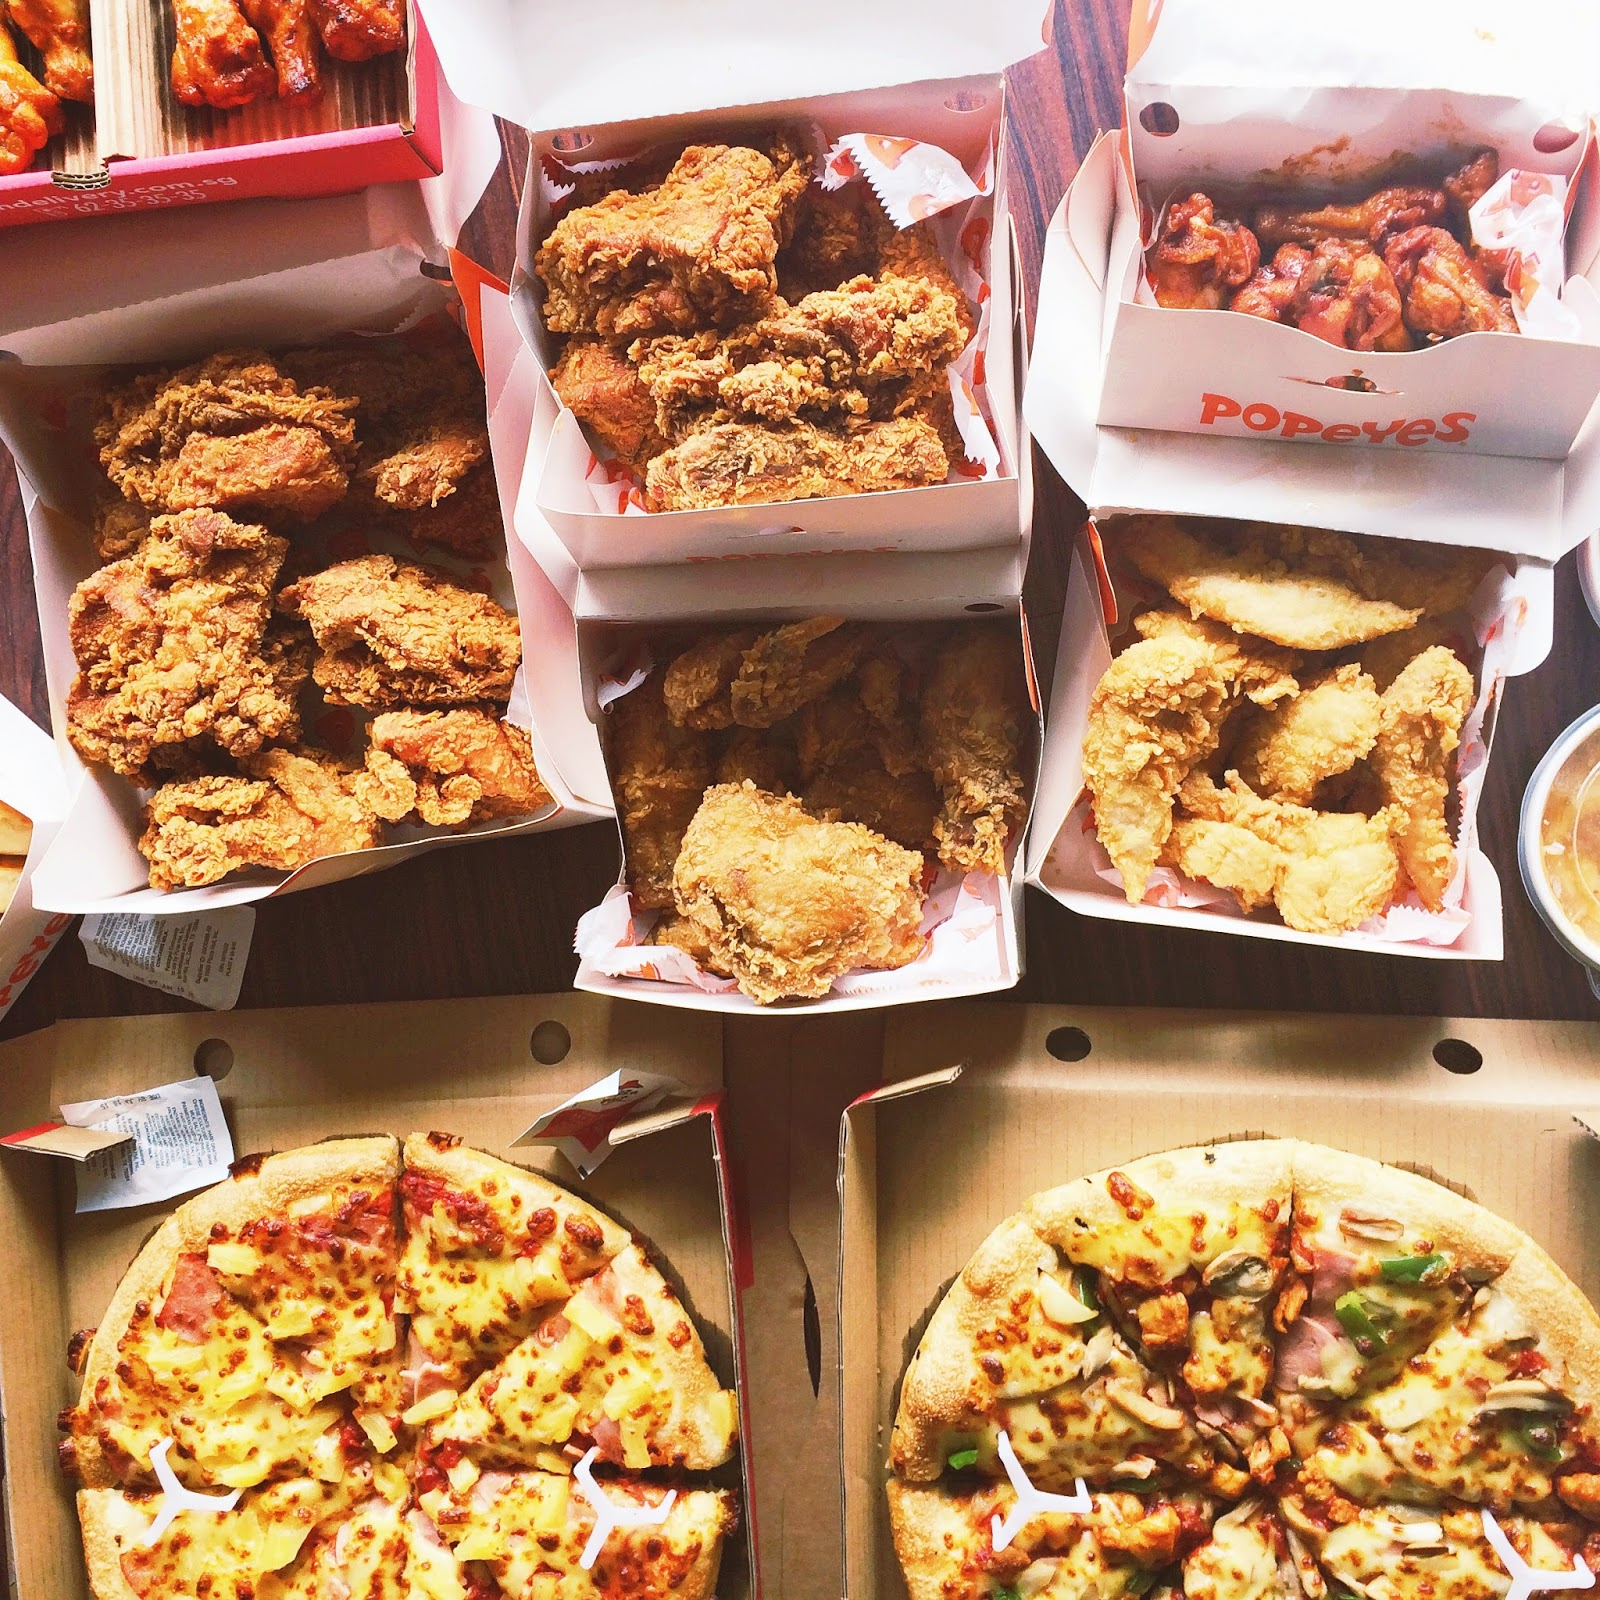 Popeyes chicken, pizza, pizzahut, feast